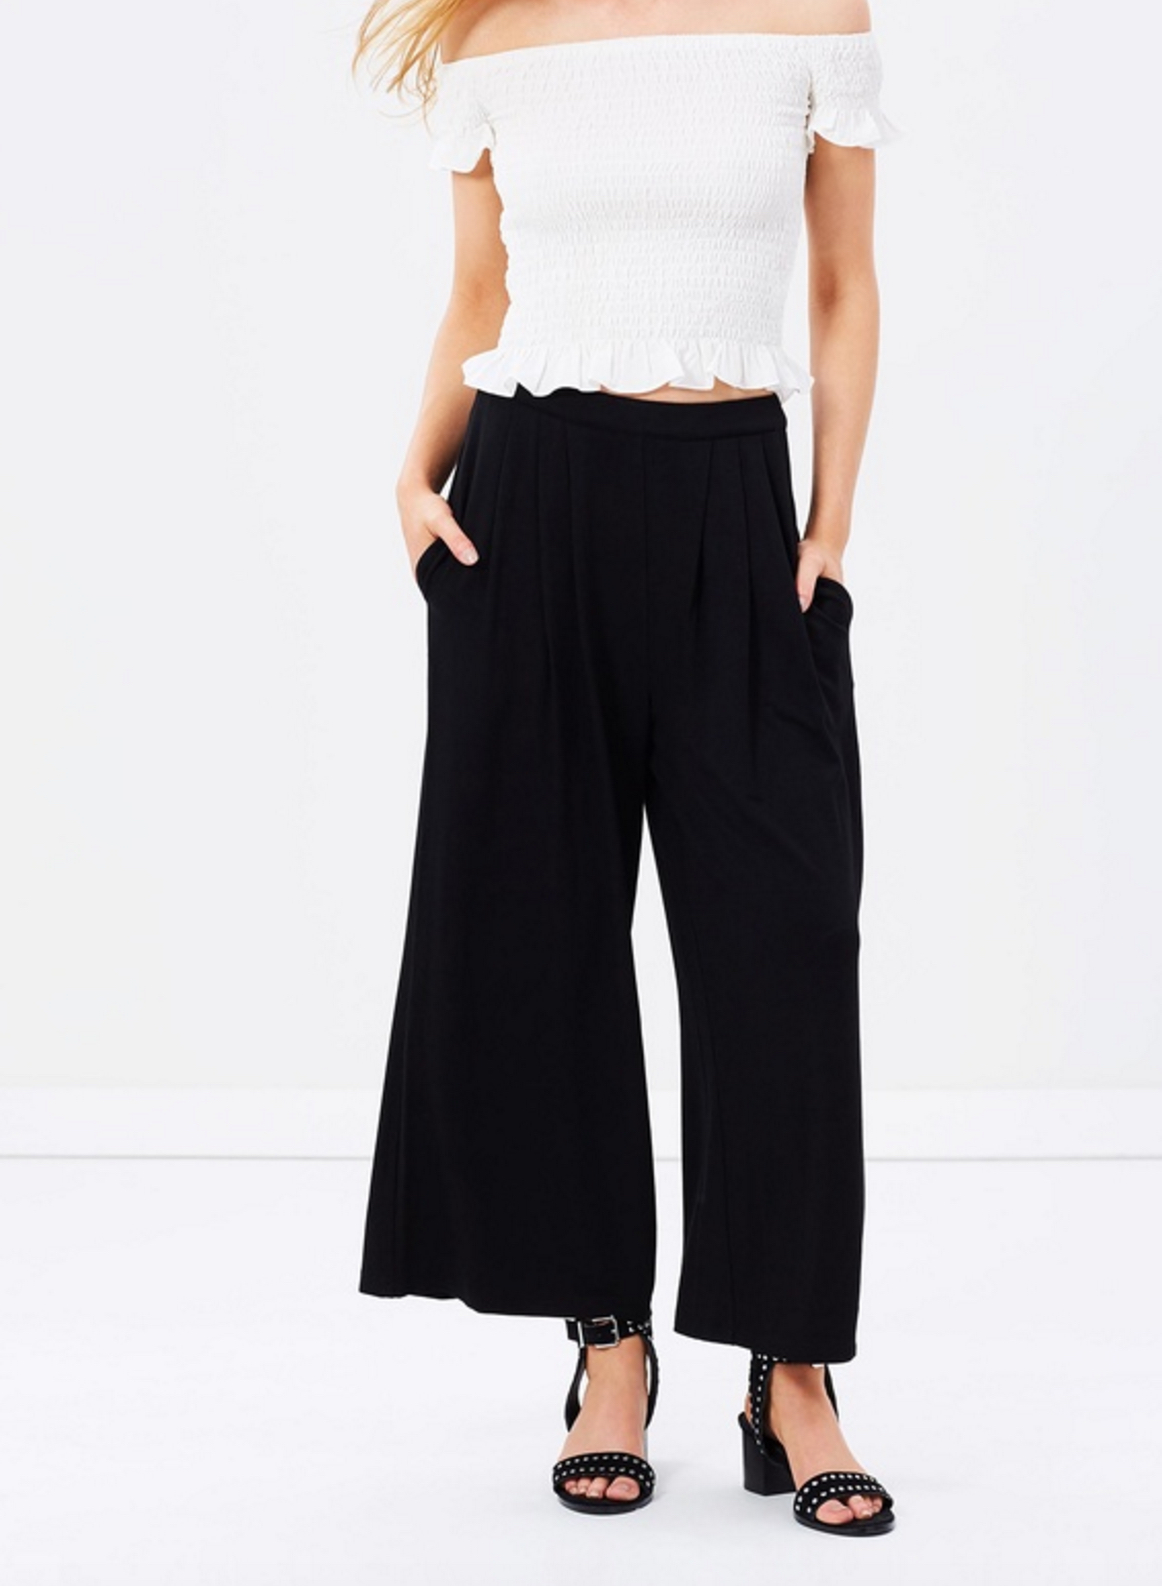 Atmos & Here Justify Jersey culottes $69.95